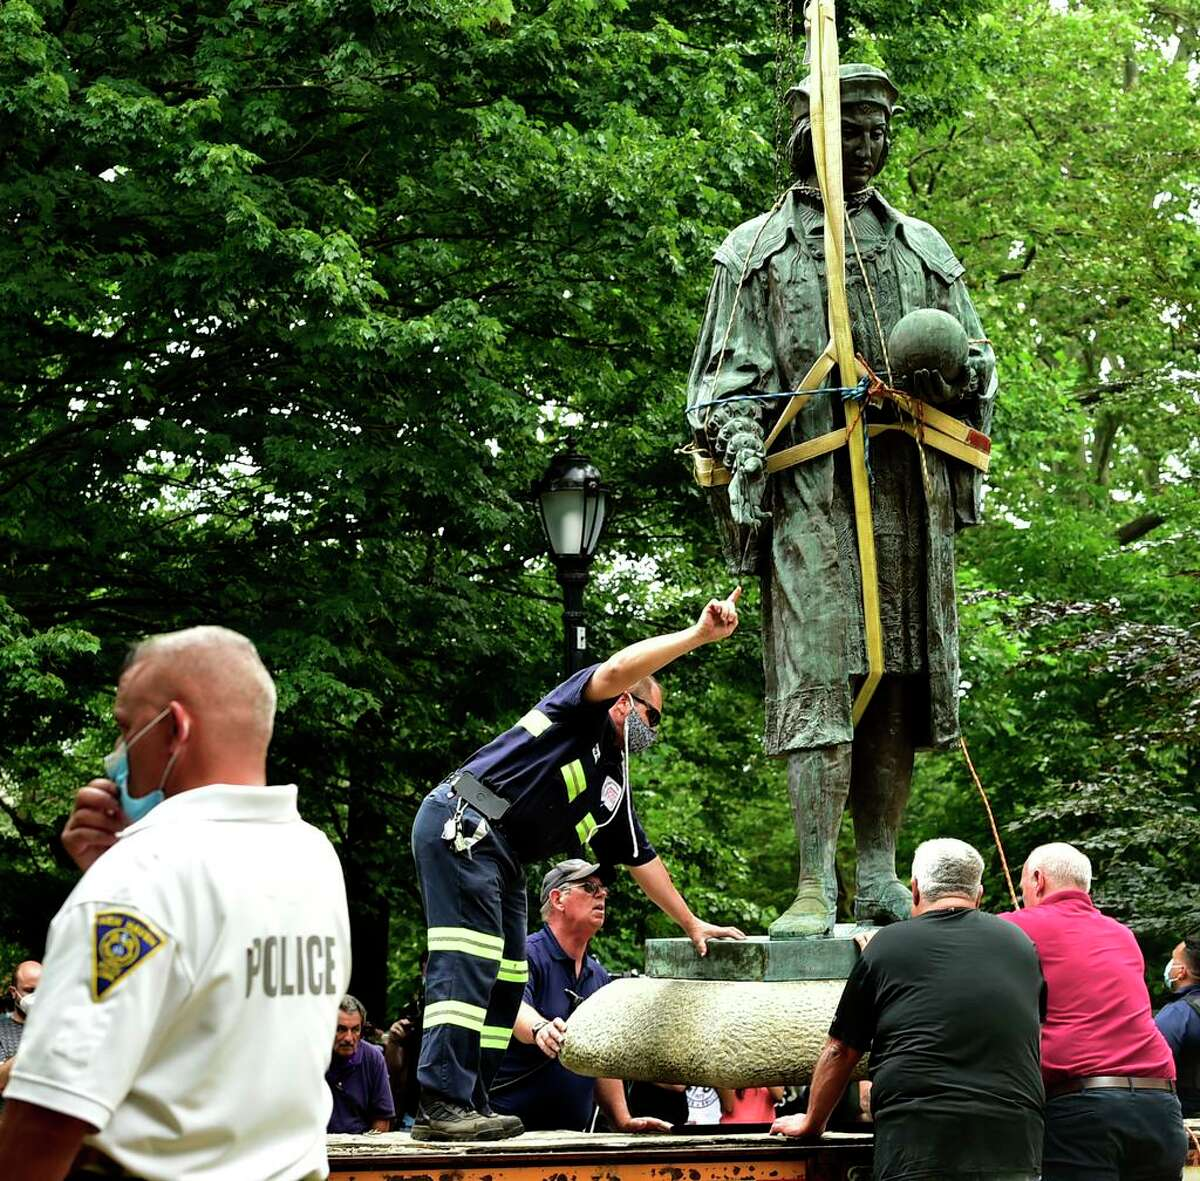 The statue of Christopher Columbus was removed from Wooster Square park June 24, 2020, hours after a skirmish erupted early in the morning between people of opposing viewpoints. Out of 171 respondents to an informal poll, 31.9 percent thought a statue honoring Italian immigrants should be erected in place of Christopher Columbus. It's a suggestion that columnist Randall Beach has gotten from readers, and on a recent trip to Vermont, he saw an example of one: